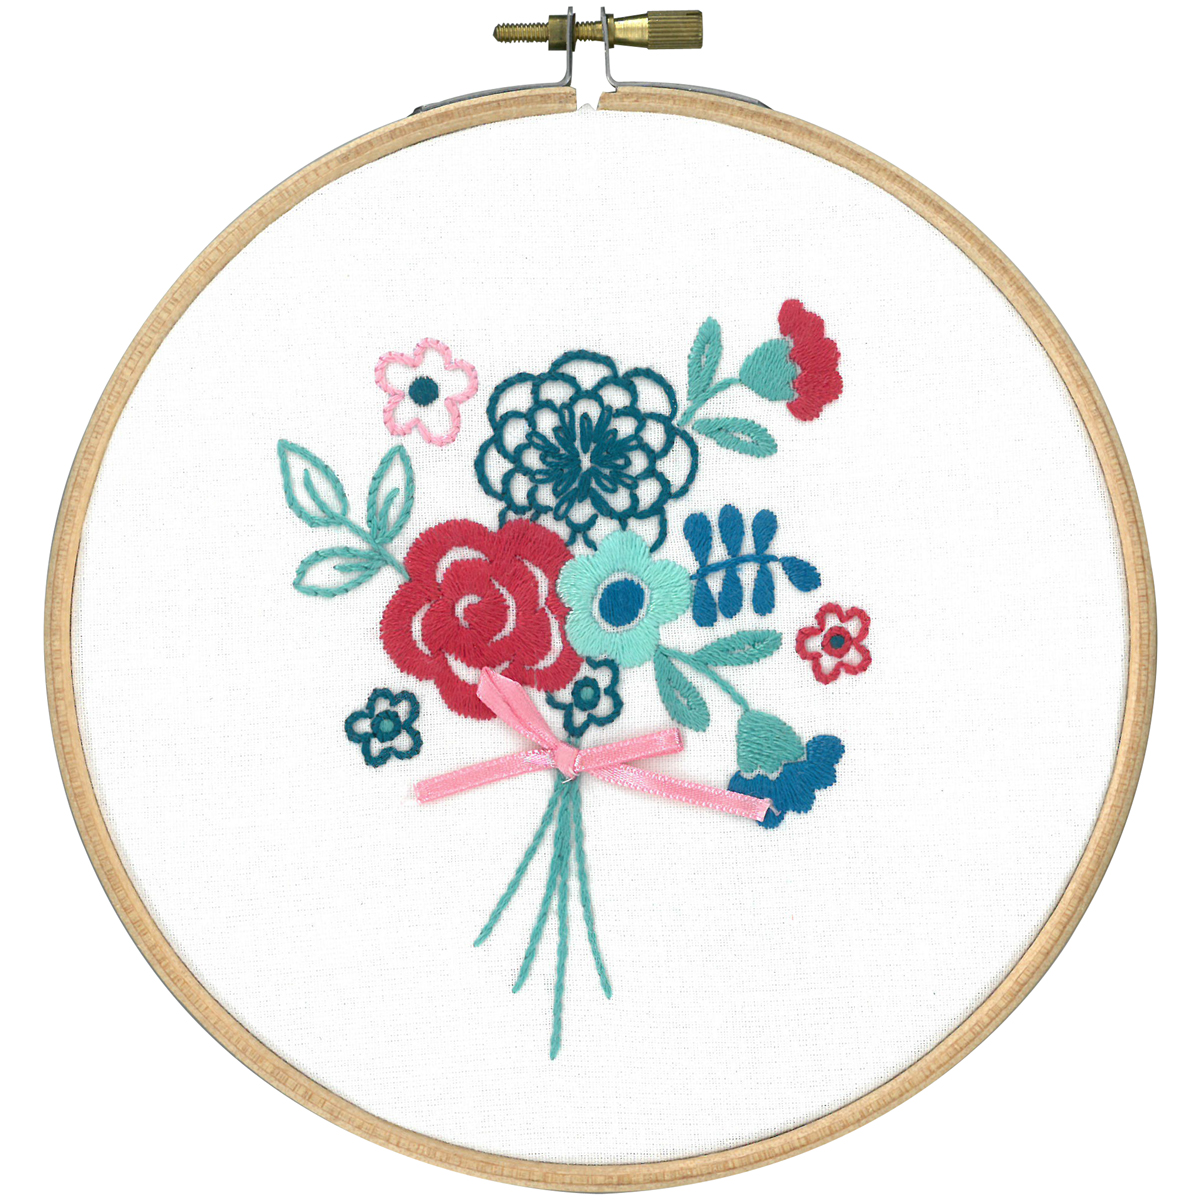 "Modern Flowers W/Bow Stamped Embroidery Kit-5.8"" Round"